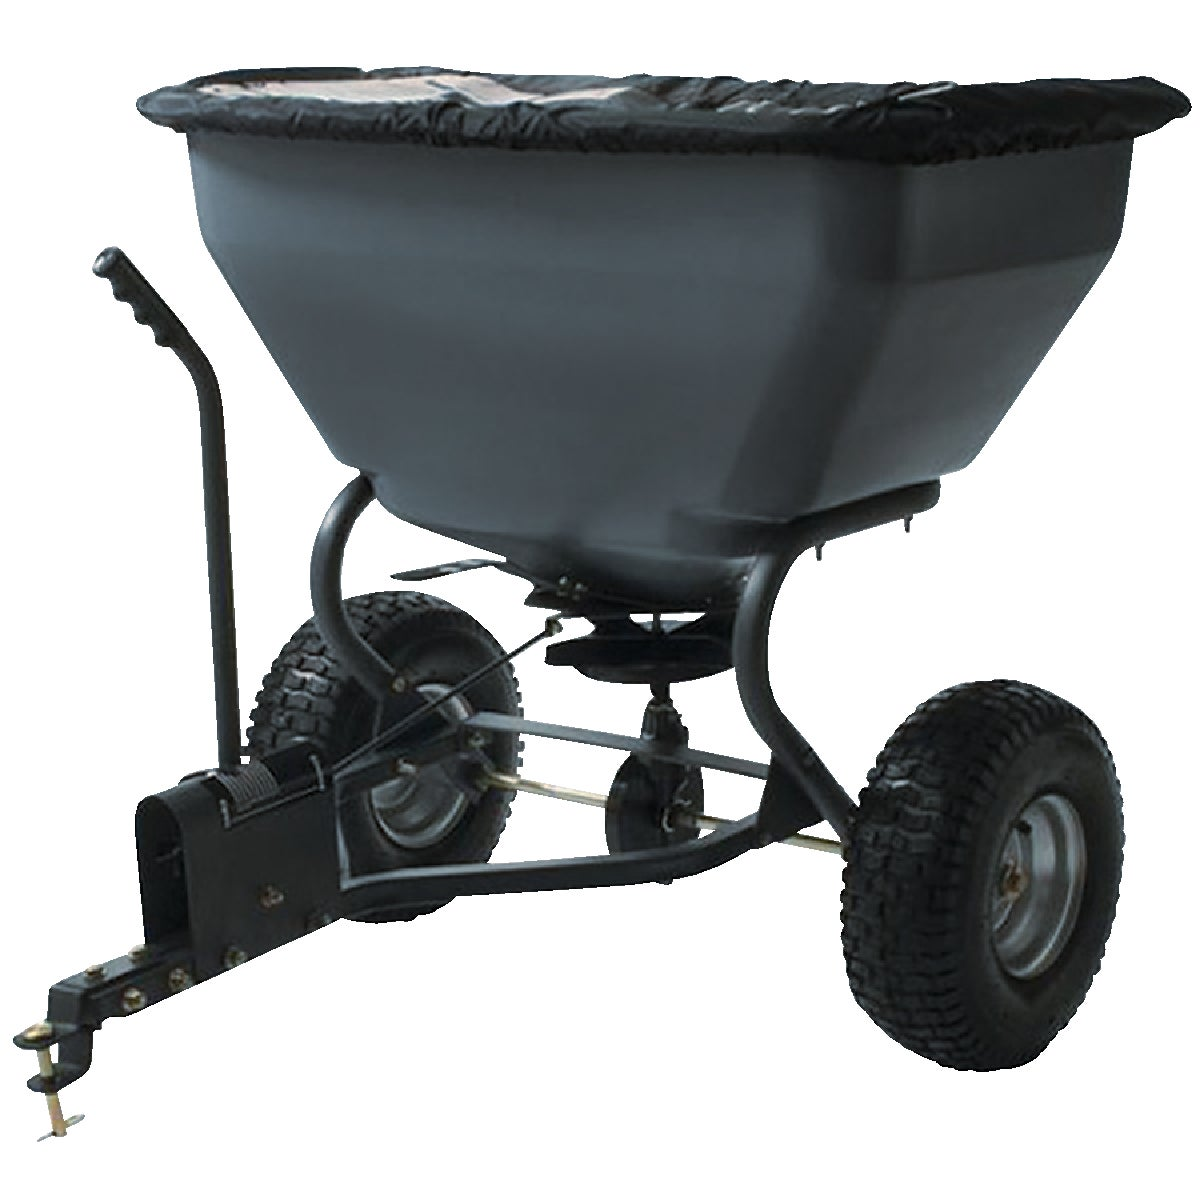 200LB ATV TOW SPREADER